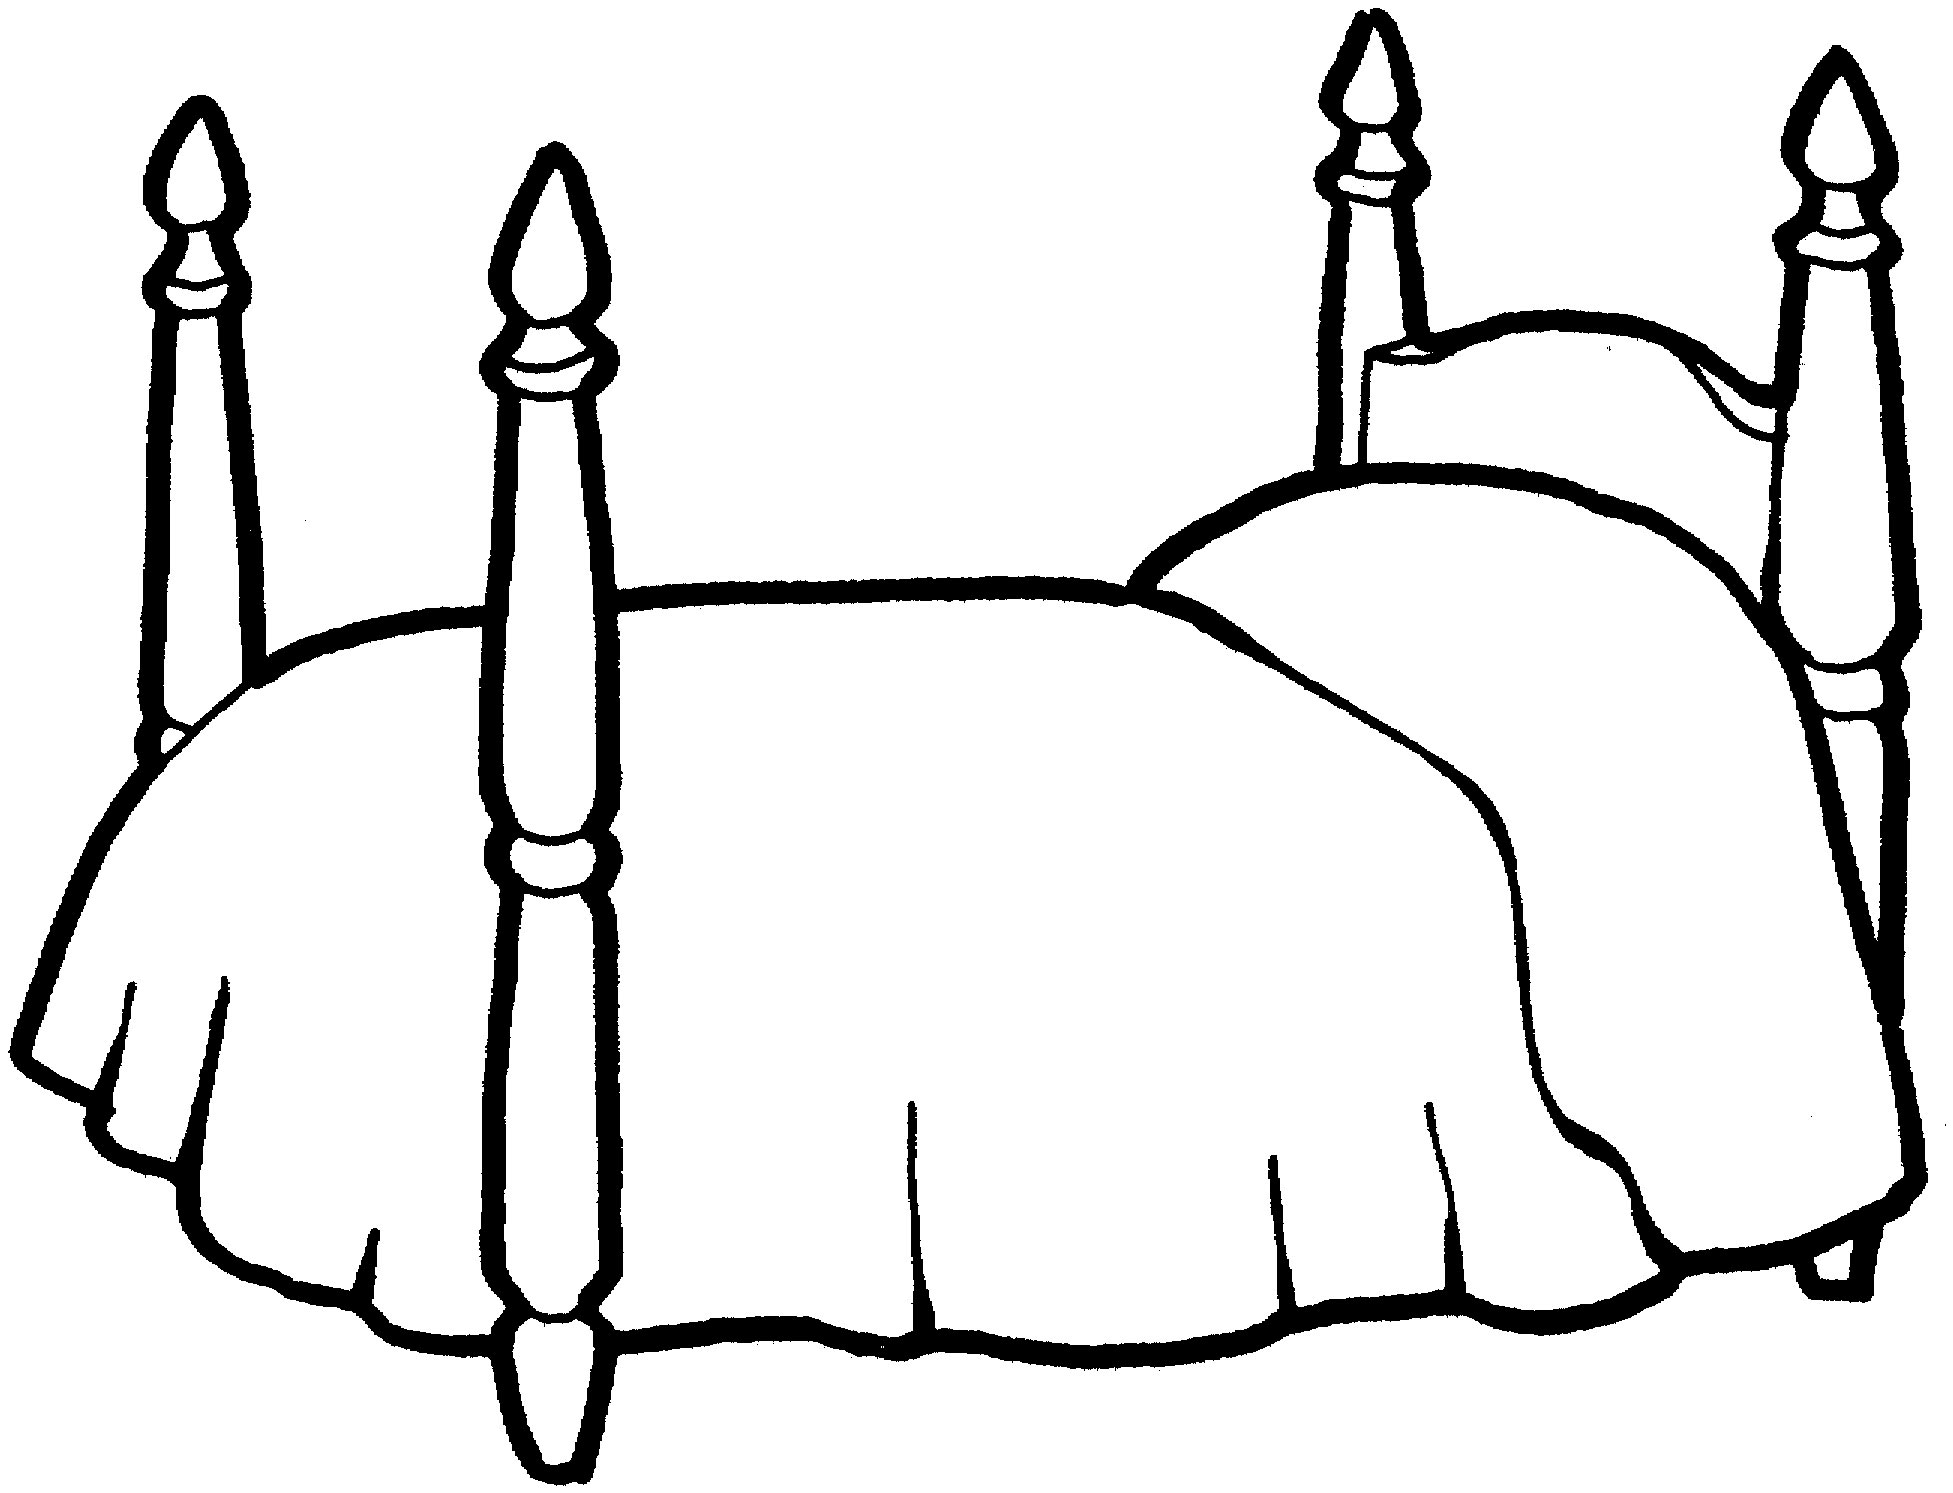 Furniture Coloring Page For Kids To Print And Download For Free